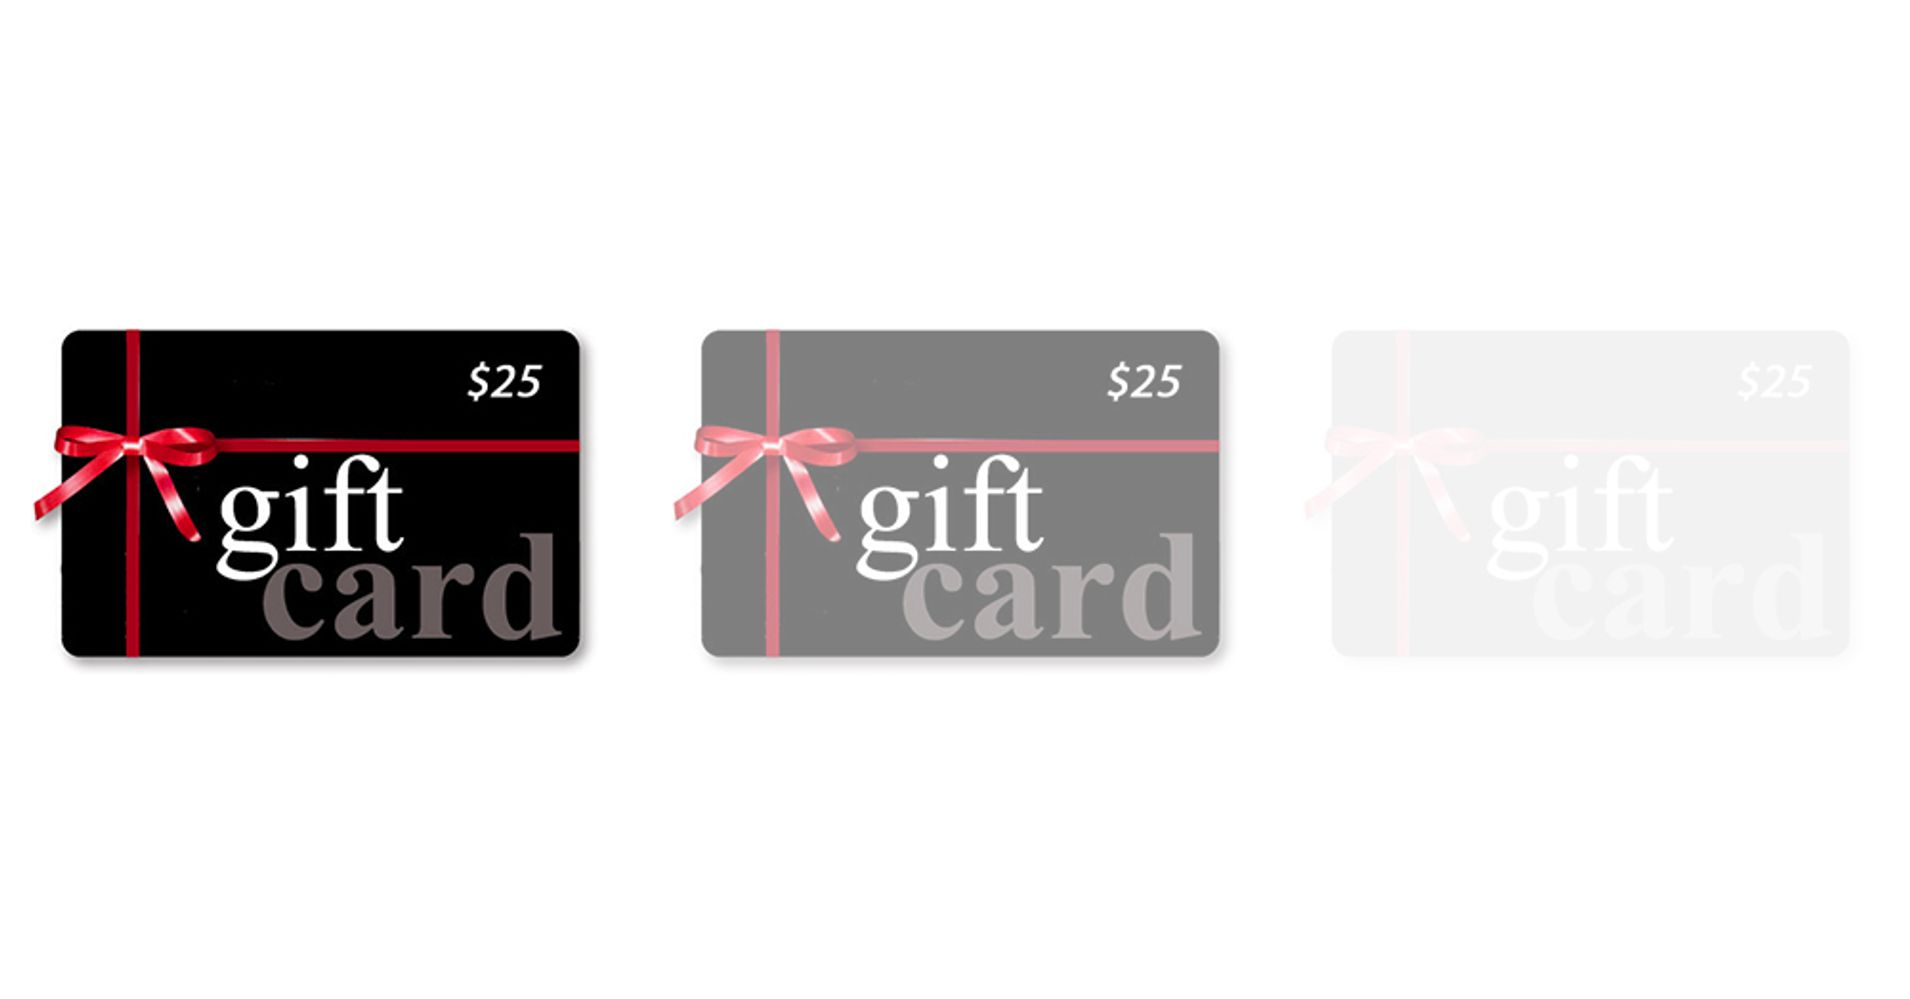 Why Do These Gift Cards Keep Disappearing? | HuffPost